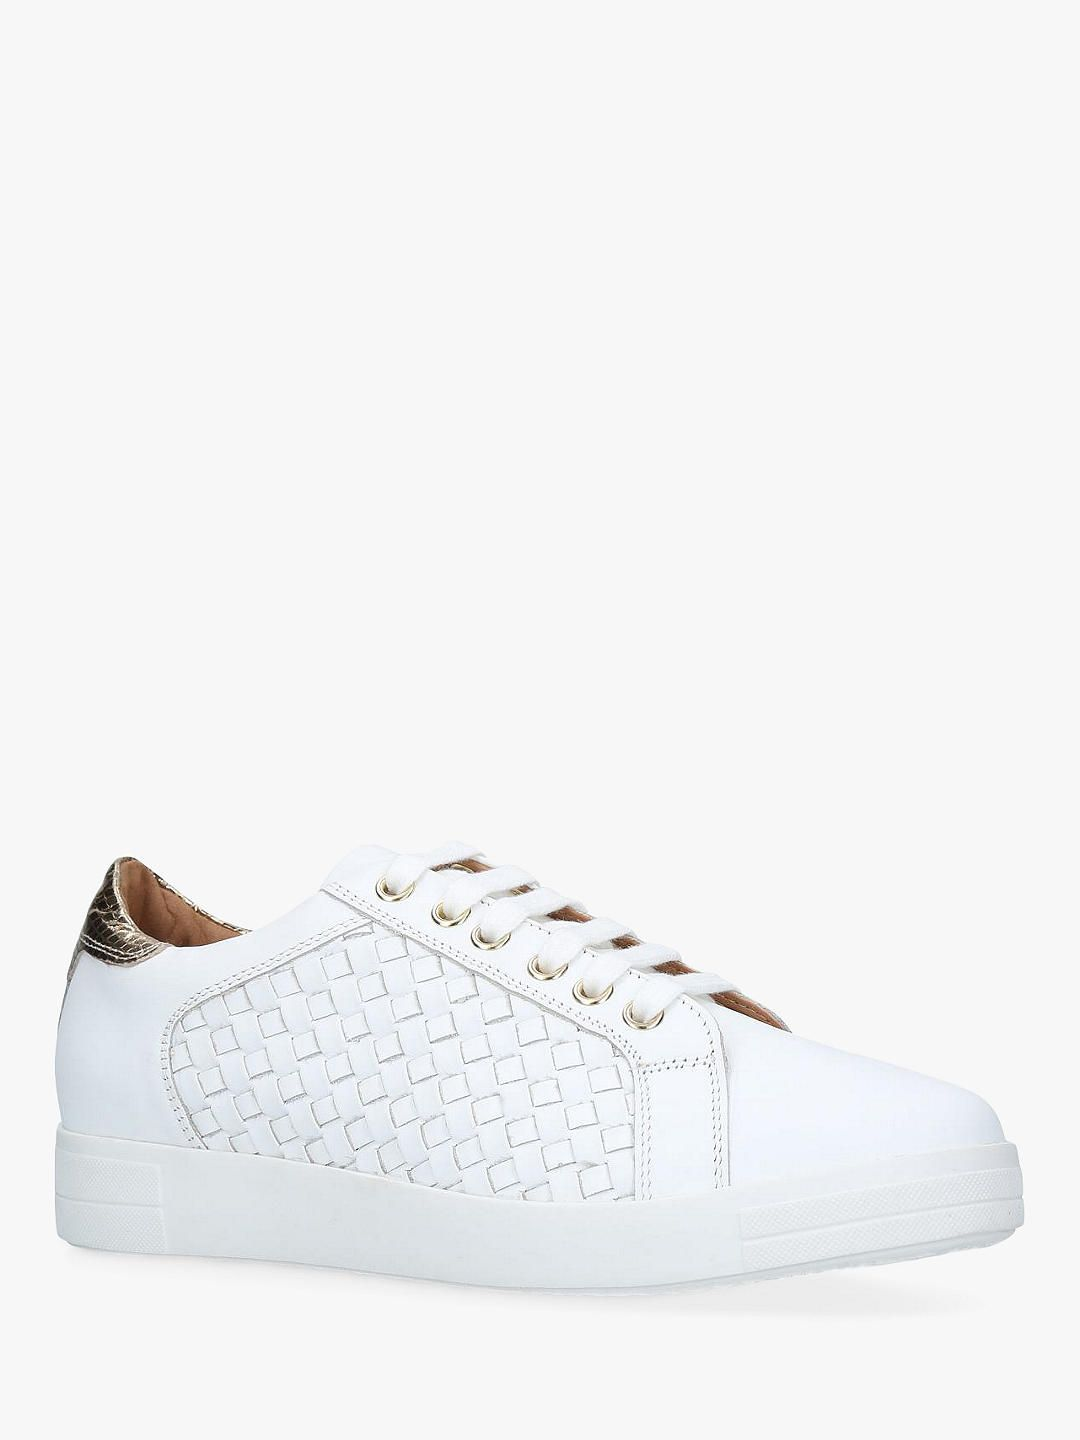 c9ece079319 Carvela Judge Leather Trainers, White in 2019 | Clothes 2019 ...